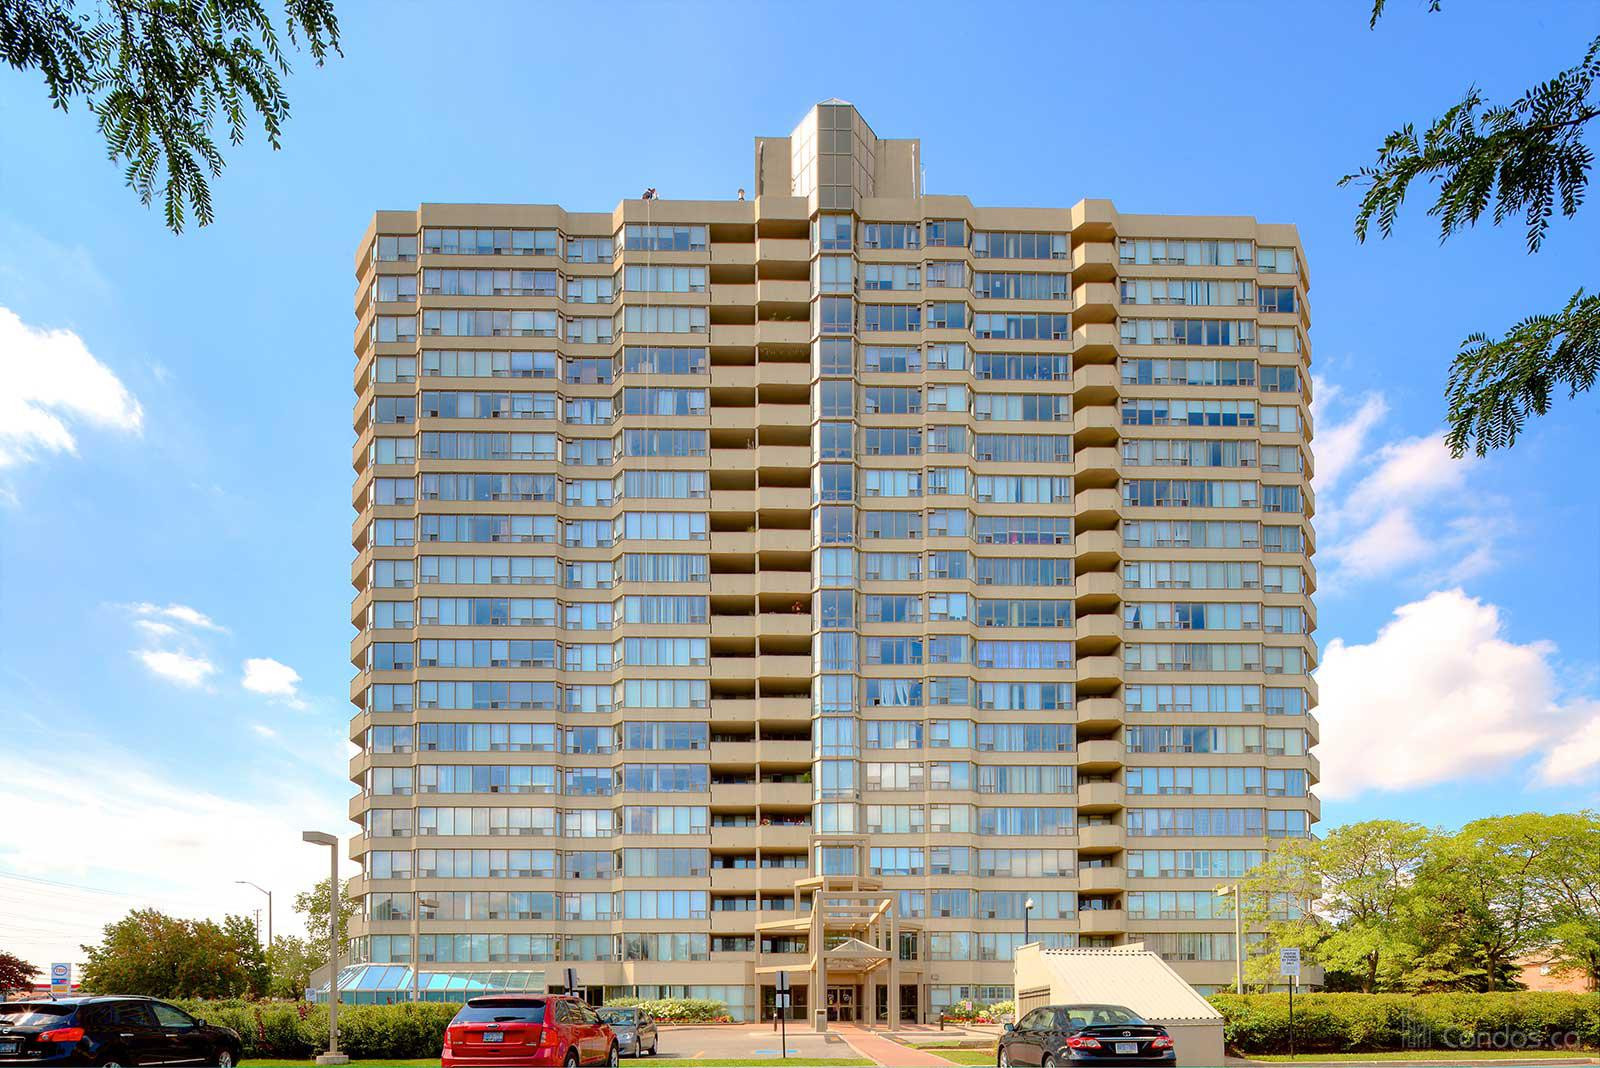 Constellation Place at 700 Constellation Dr, Mississauga 1